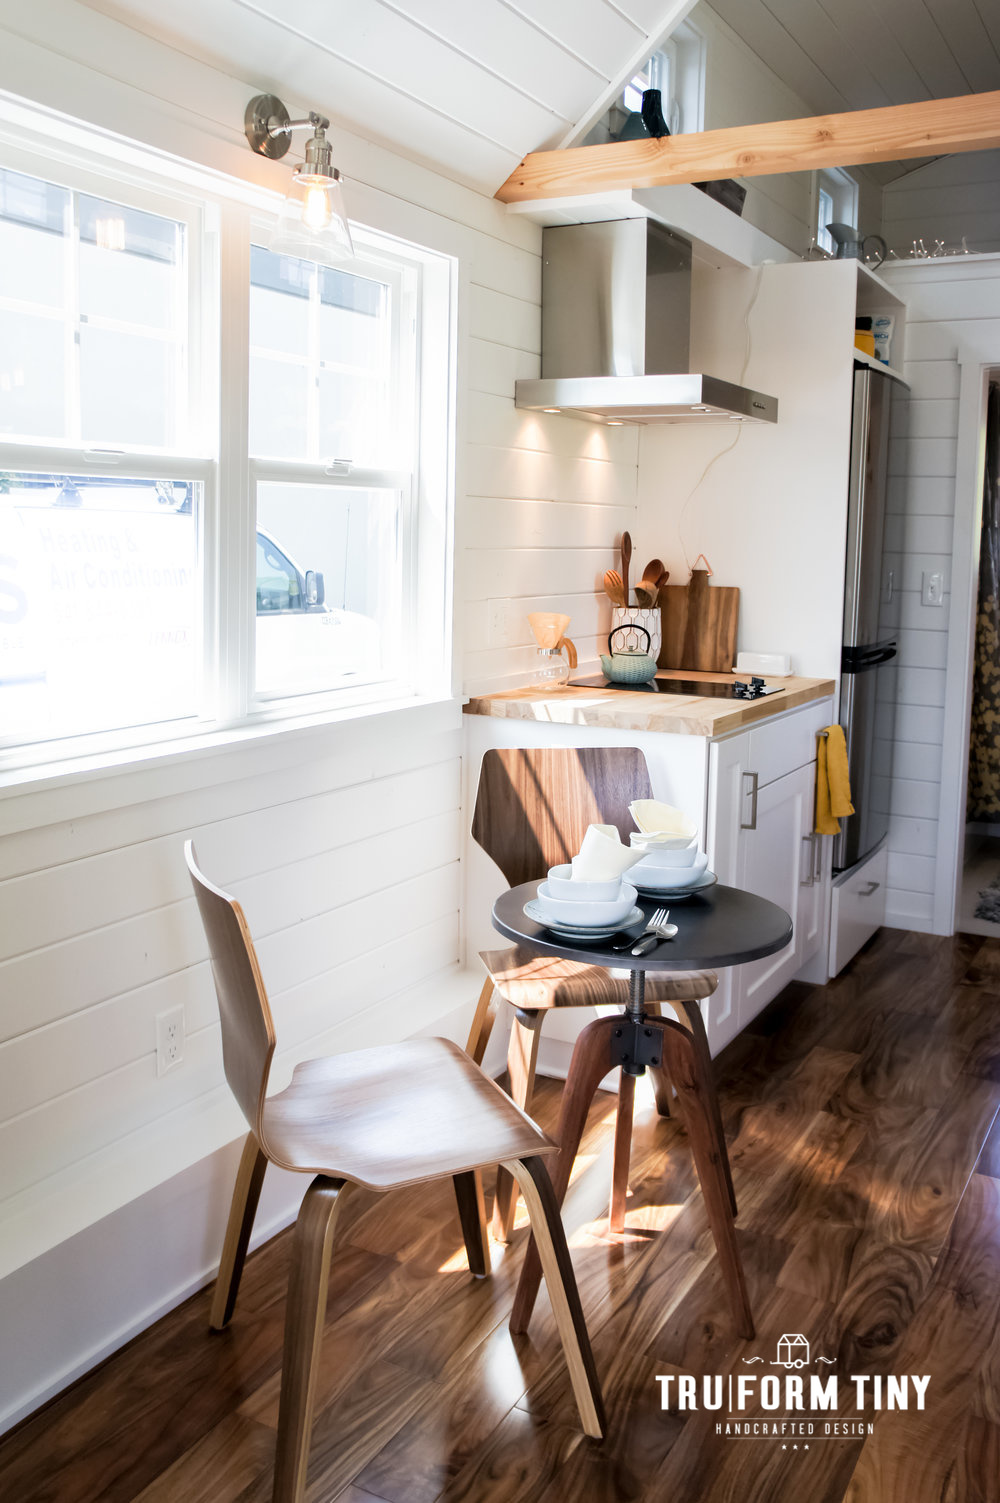 TINY HOUSE TOWN: The Payette V3 From Truform Tiny Homes